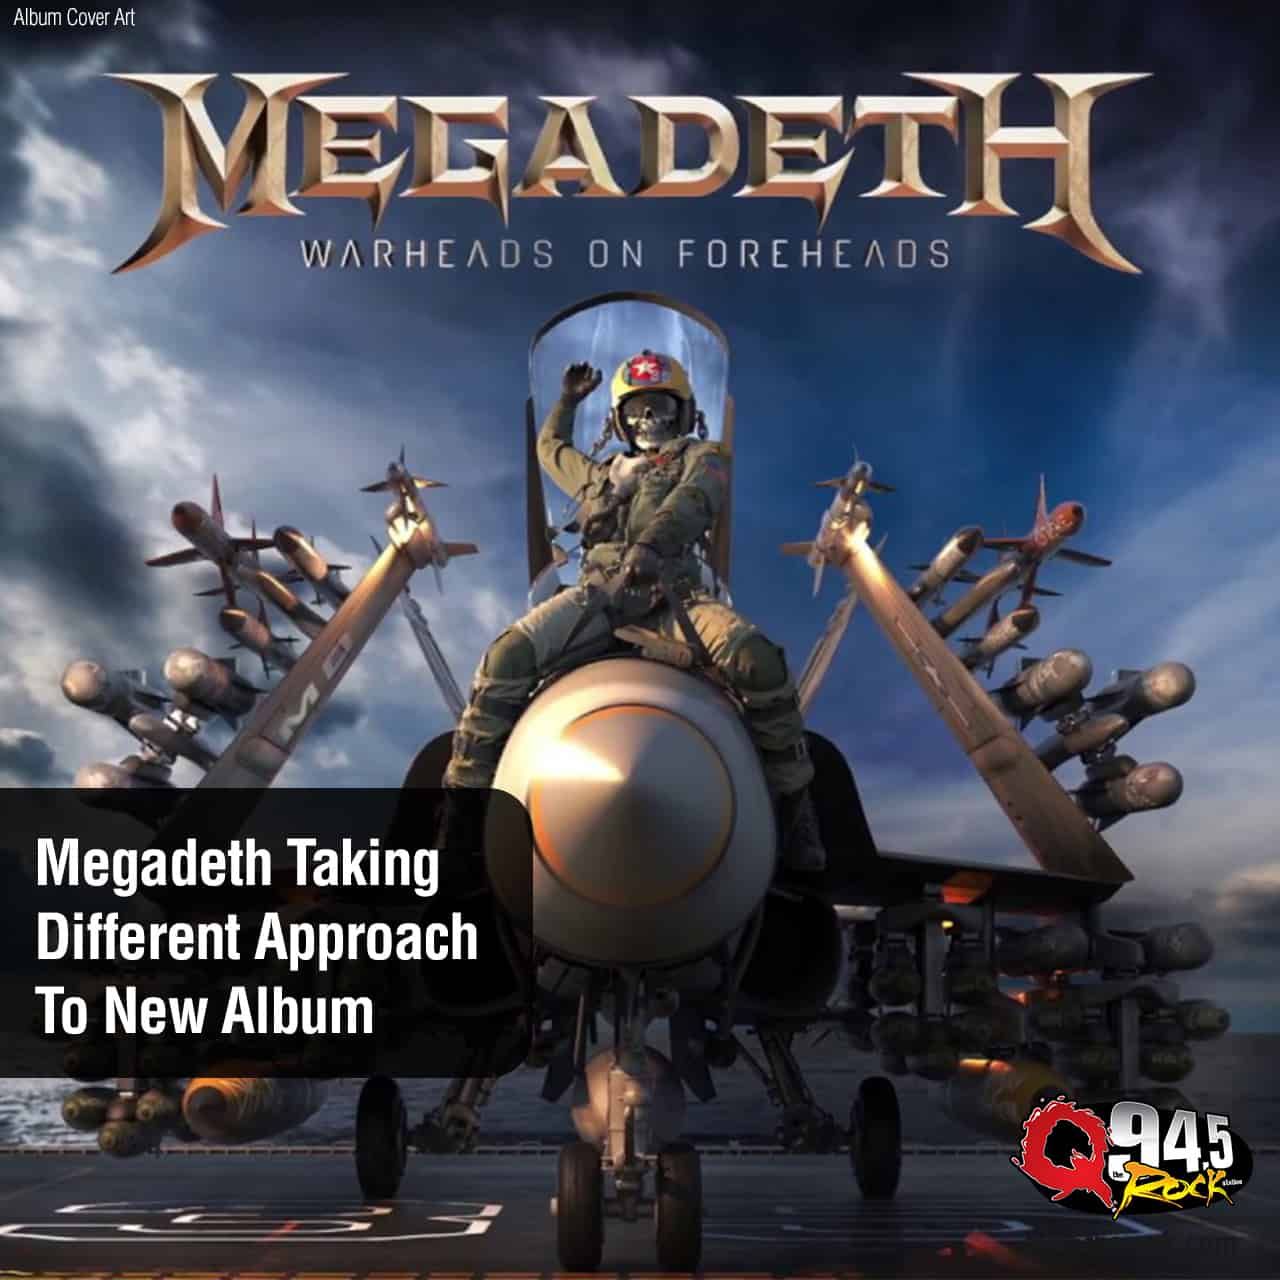 Megadeth Taking Different Approach To New Album